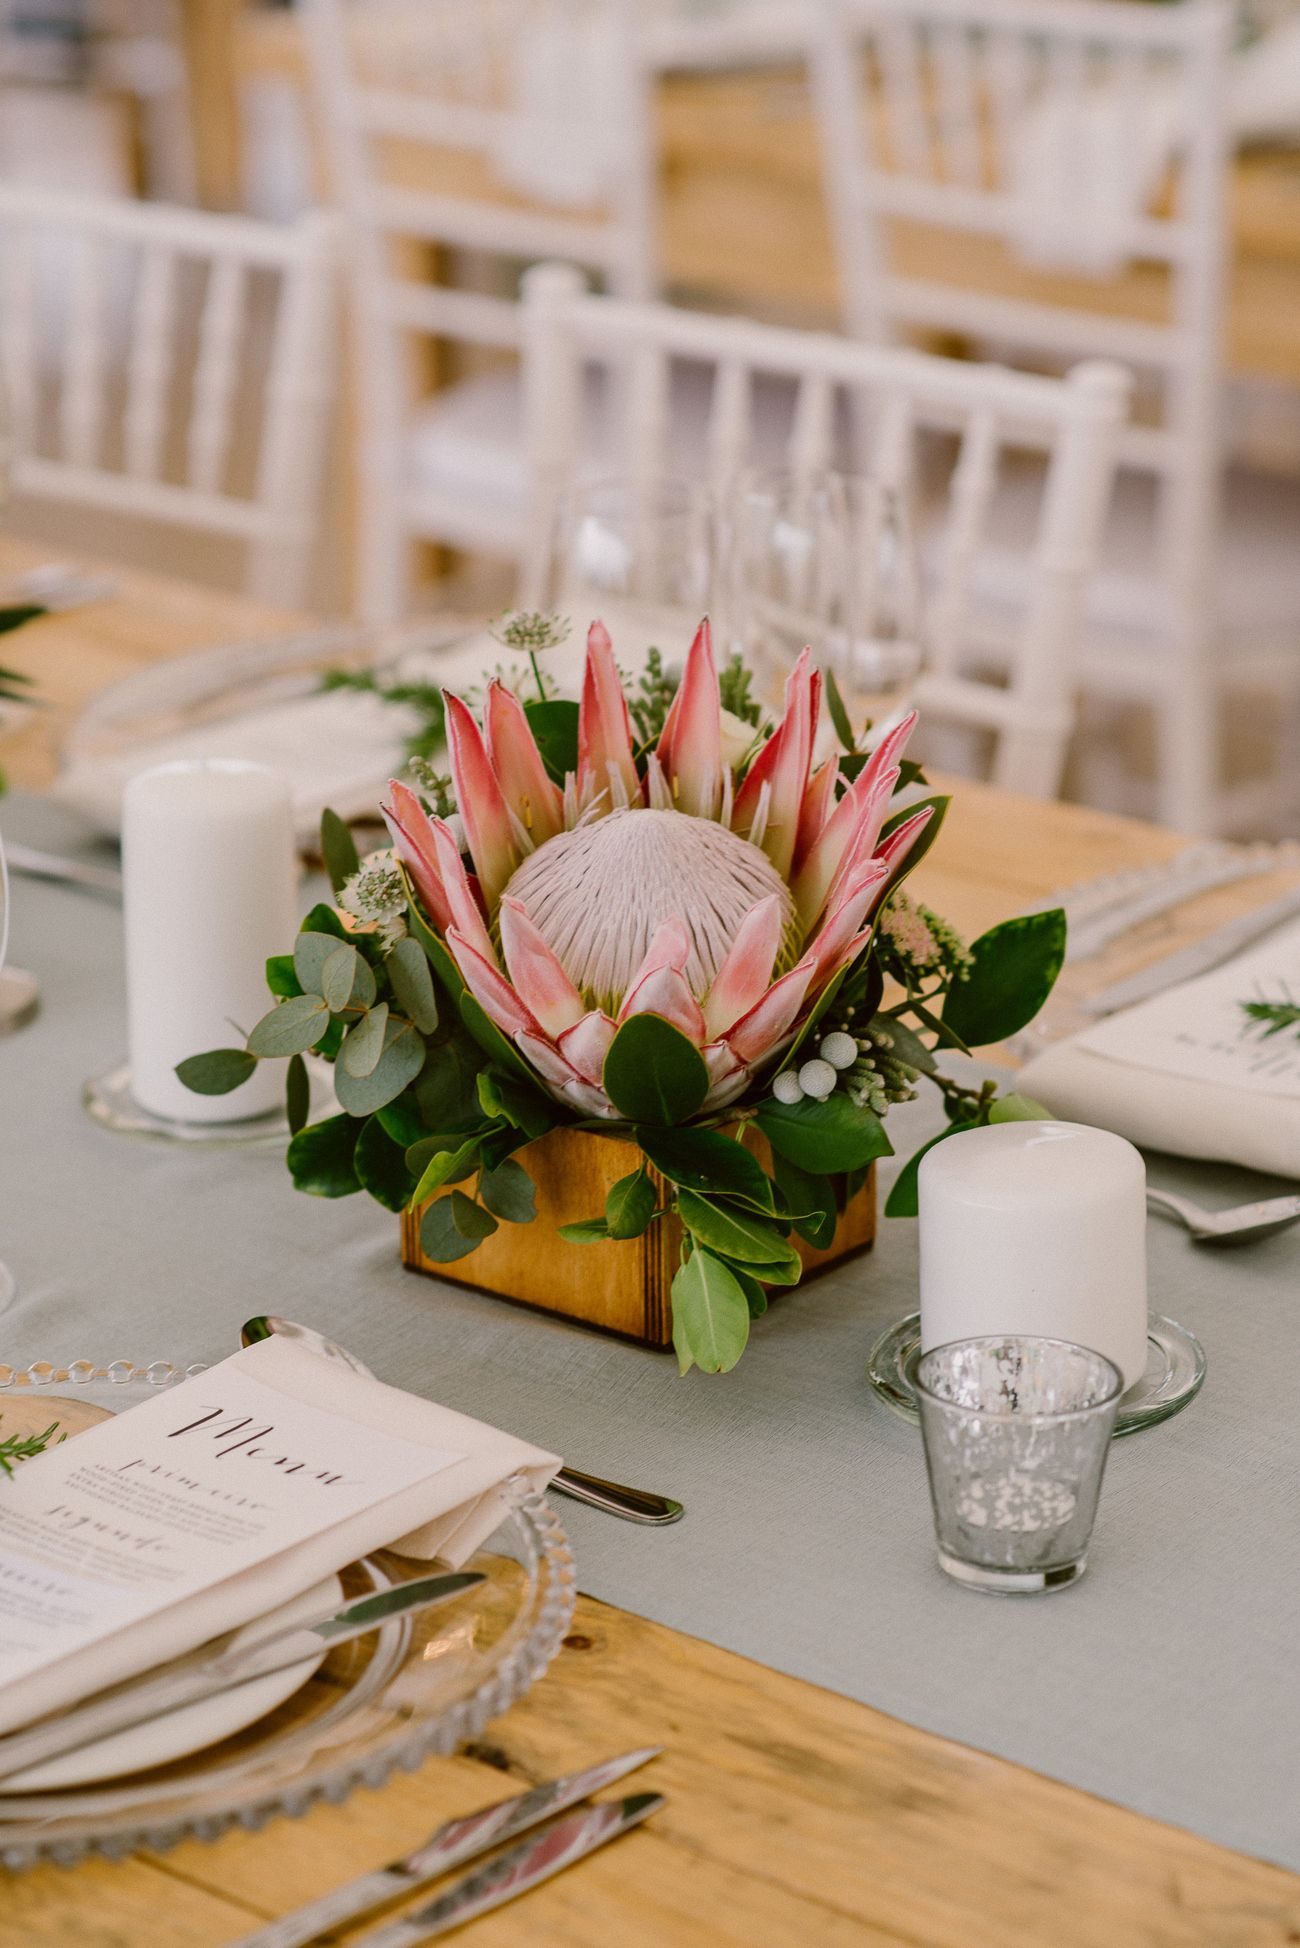 Chic Vineyard Wedding By Lad Lass Photography Cheap Wedding Table Centerpieces Flower Centerpieces Wedding Wedding Floral Centerpieces